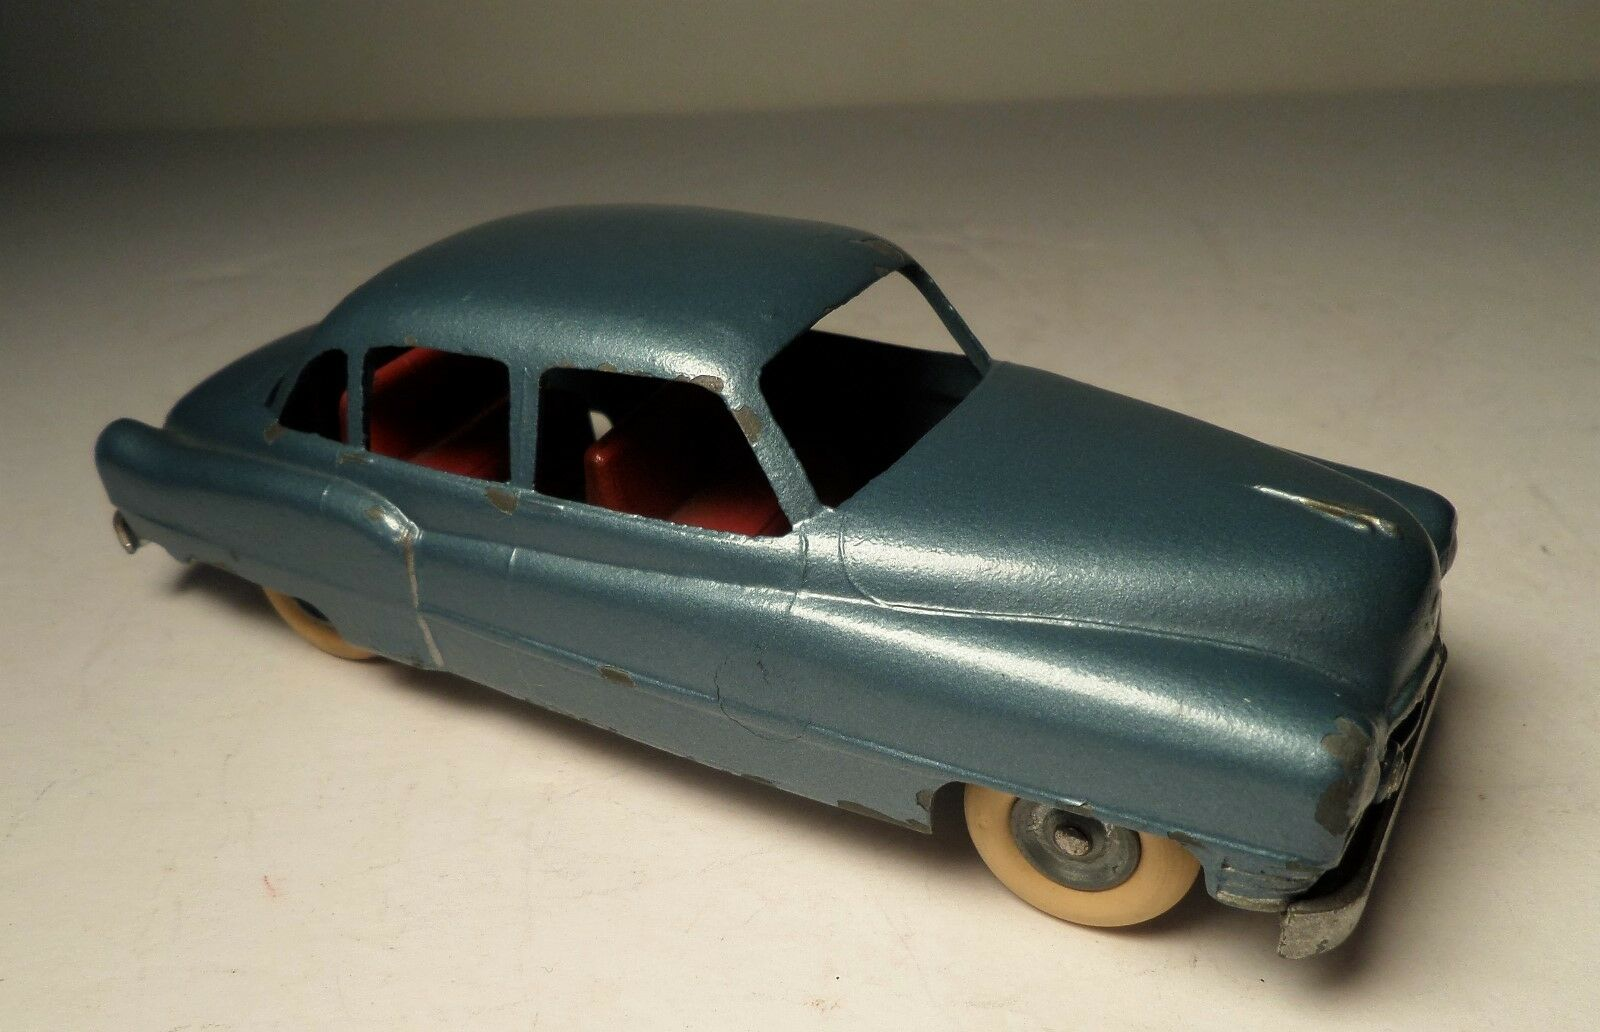 Vintage Die Cast Solido 1953 bluee Cadillac Special Car Toy